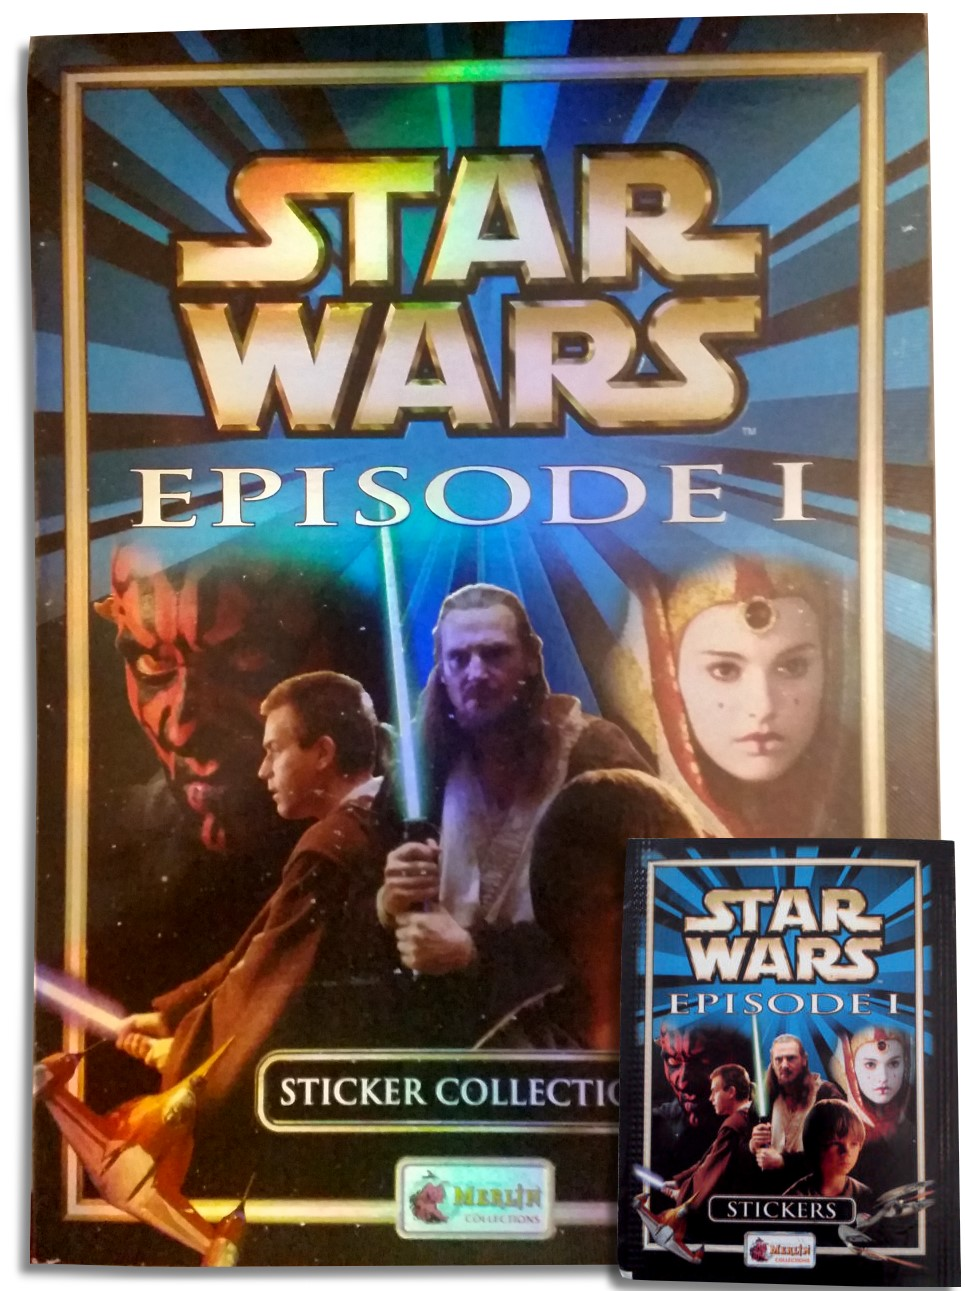 Star wars the phantom menace sticker book cover